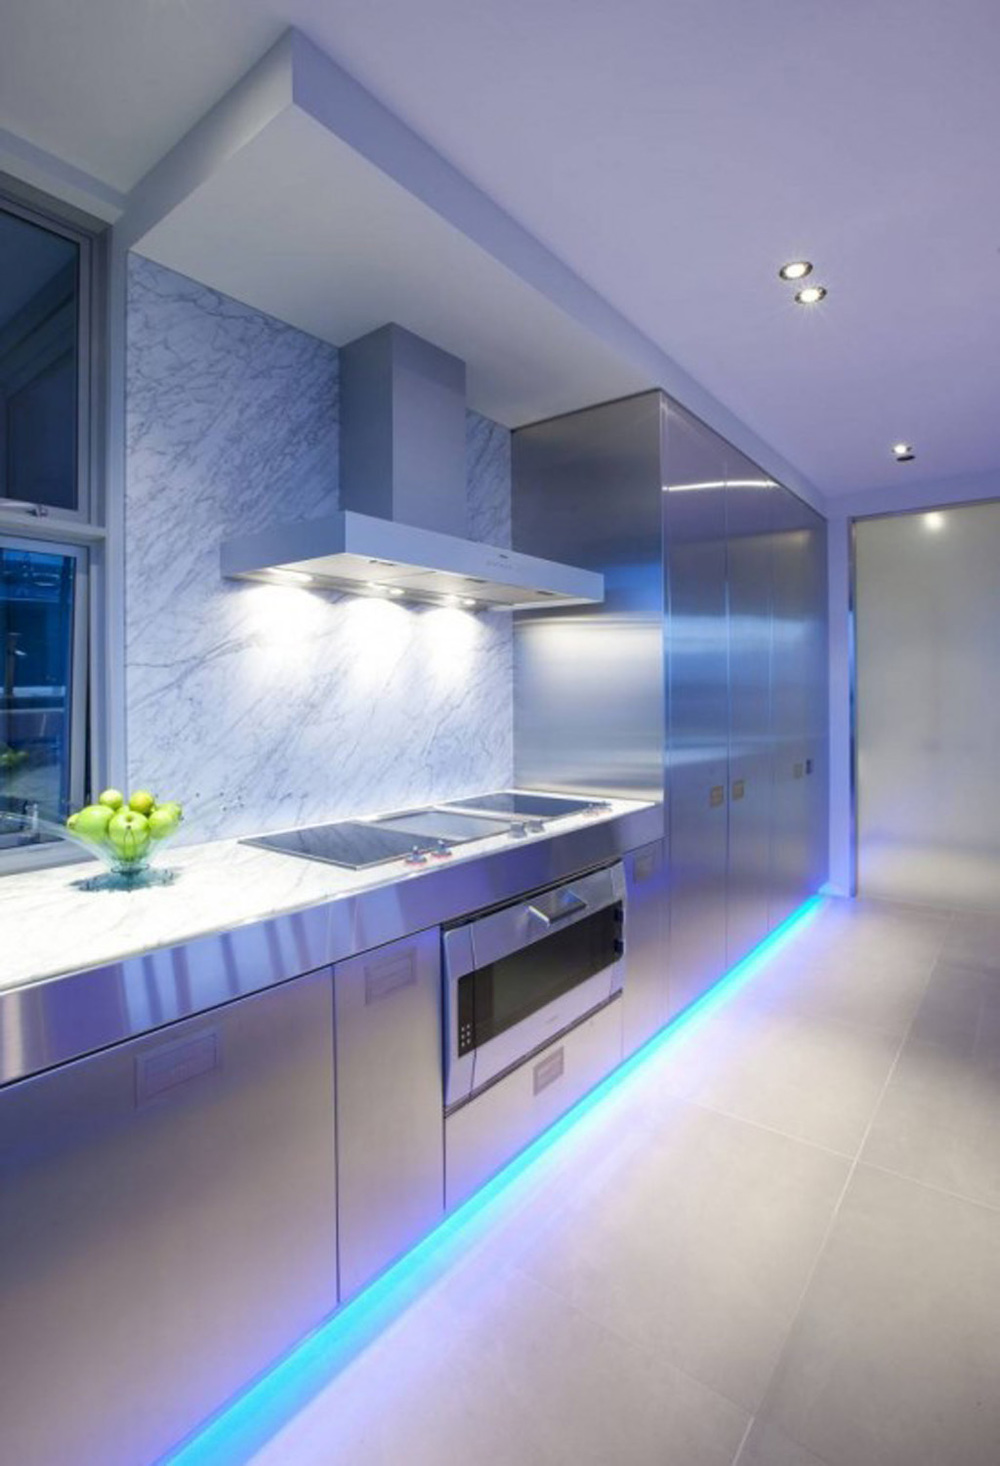 ultra-modern-kitchen-design-with-led-lighting-fixtures-modern-kitchen.jpg